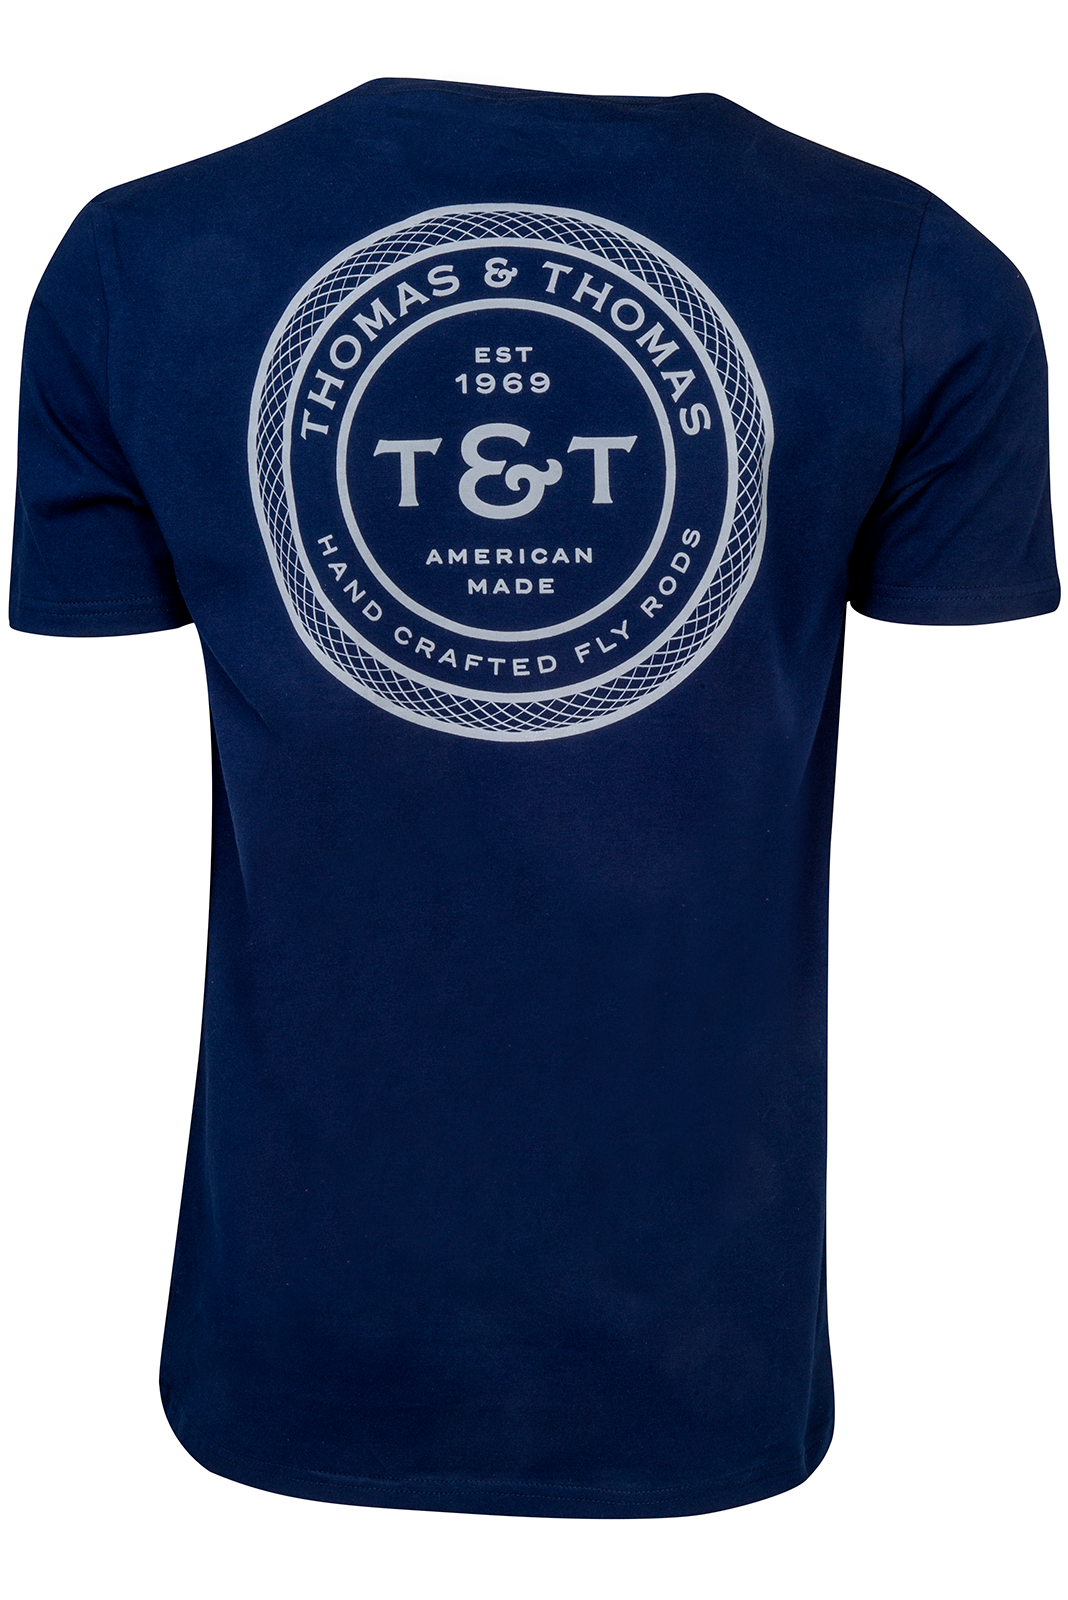 T&T Signature Pocket T-Shirt - Navy Blue